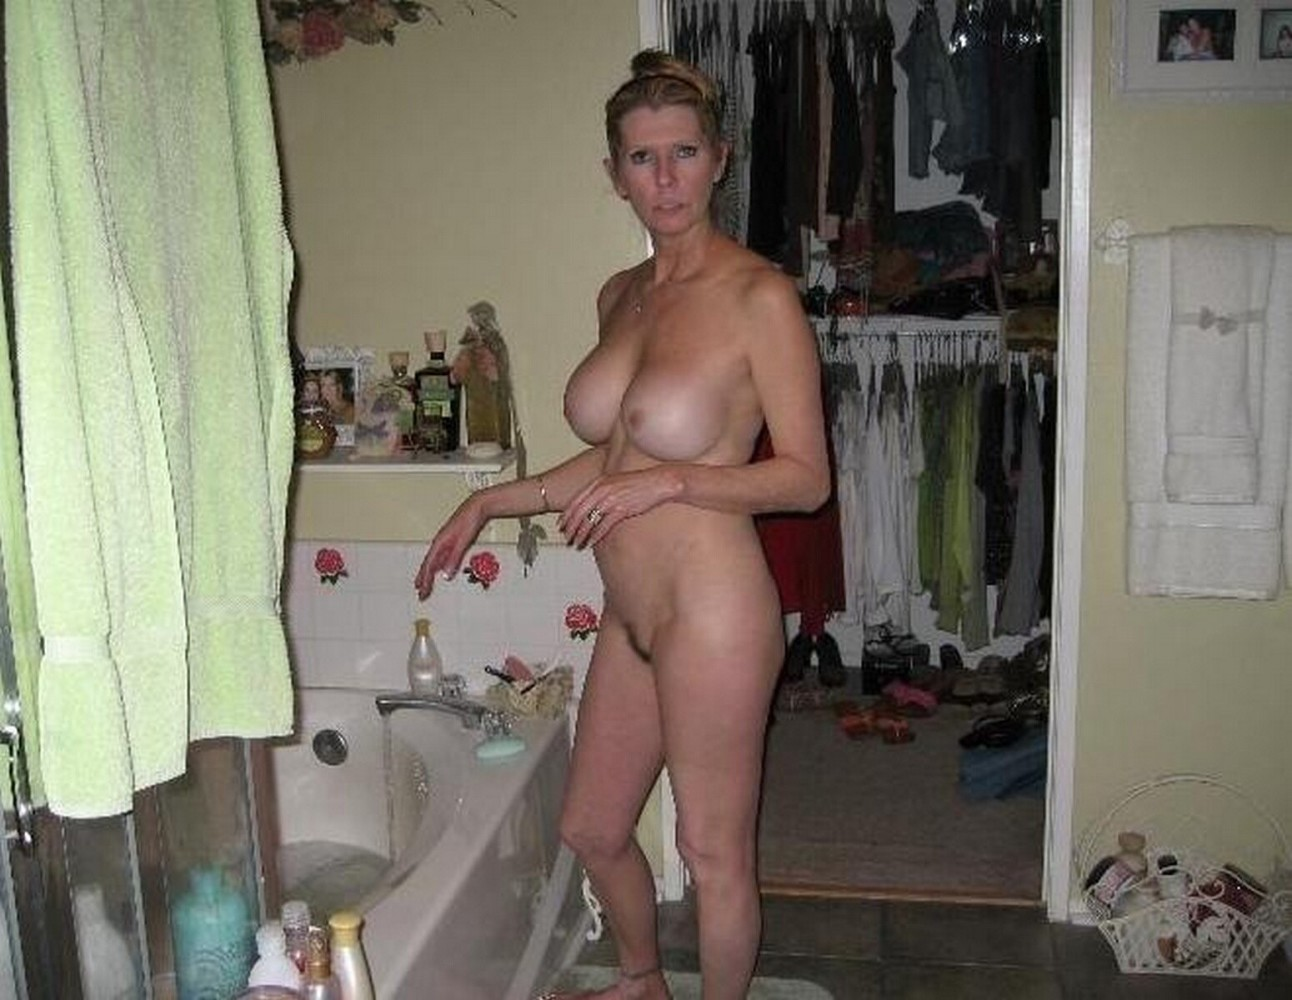 Naked girl embarrassed nude female